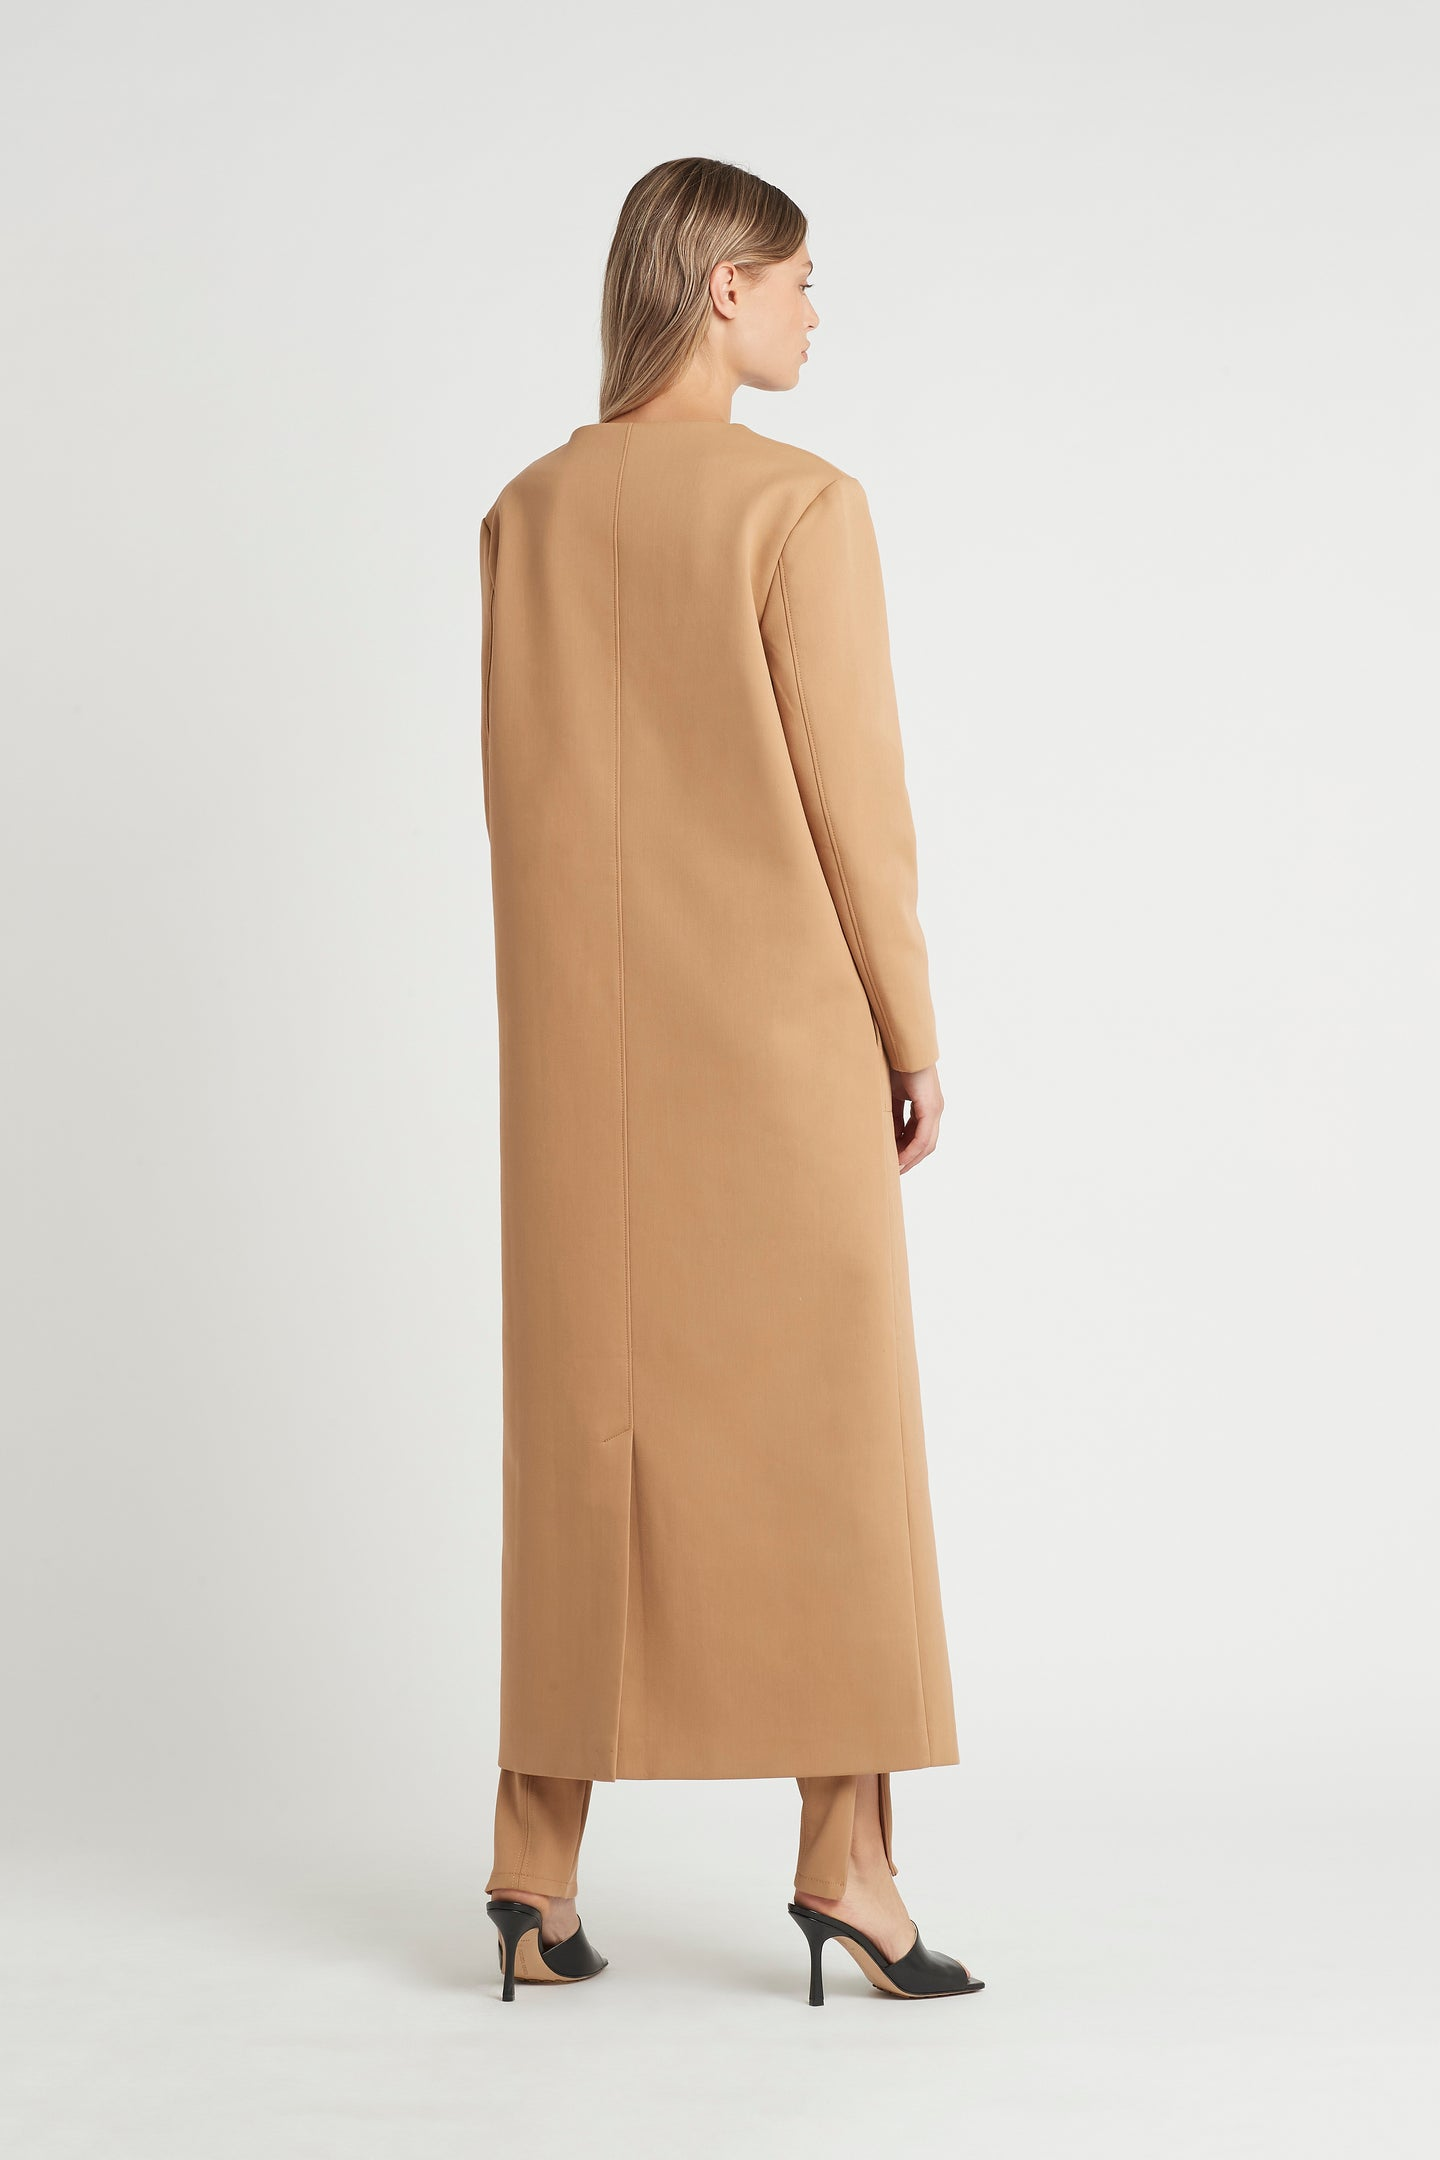 SIR the label ANDRE COAT CAMEL